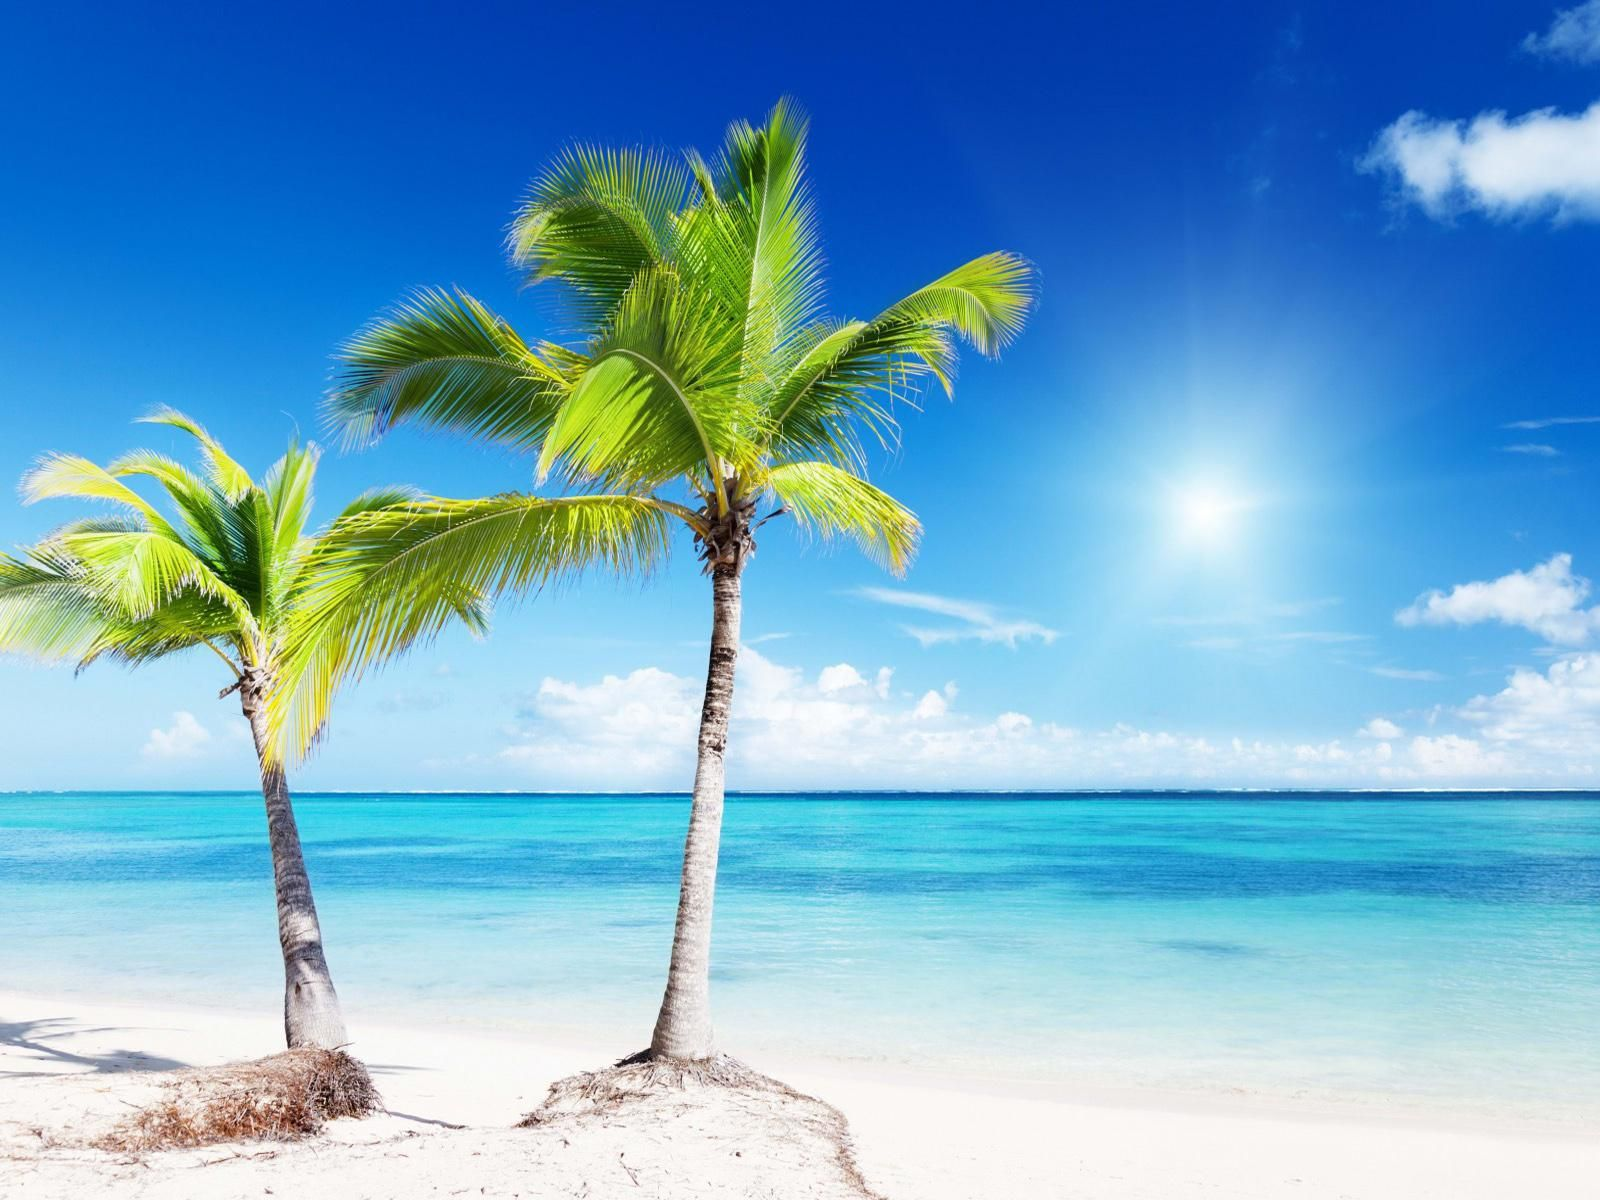 Android Beach Wallpapers Group 67: Android Beach Wallpapers Group 1600×1200 Palm Trees Beach